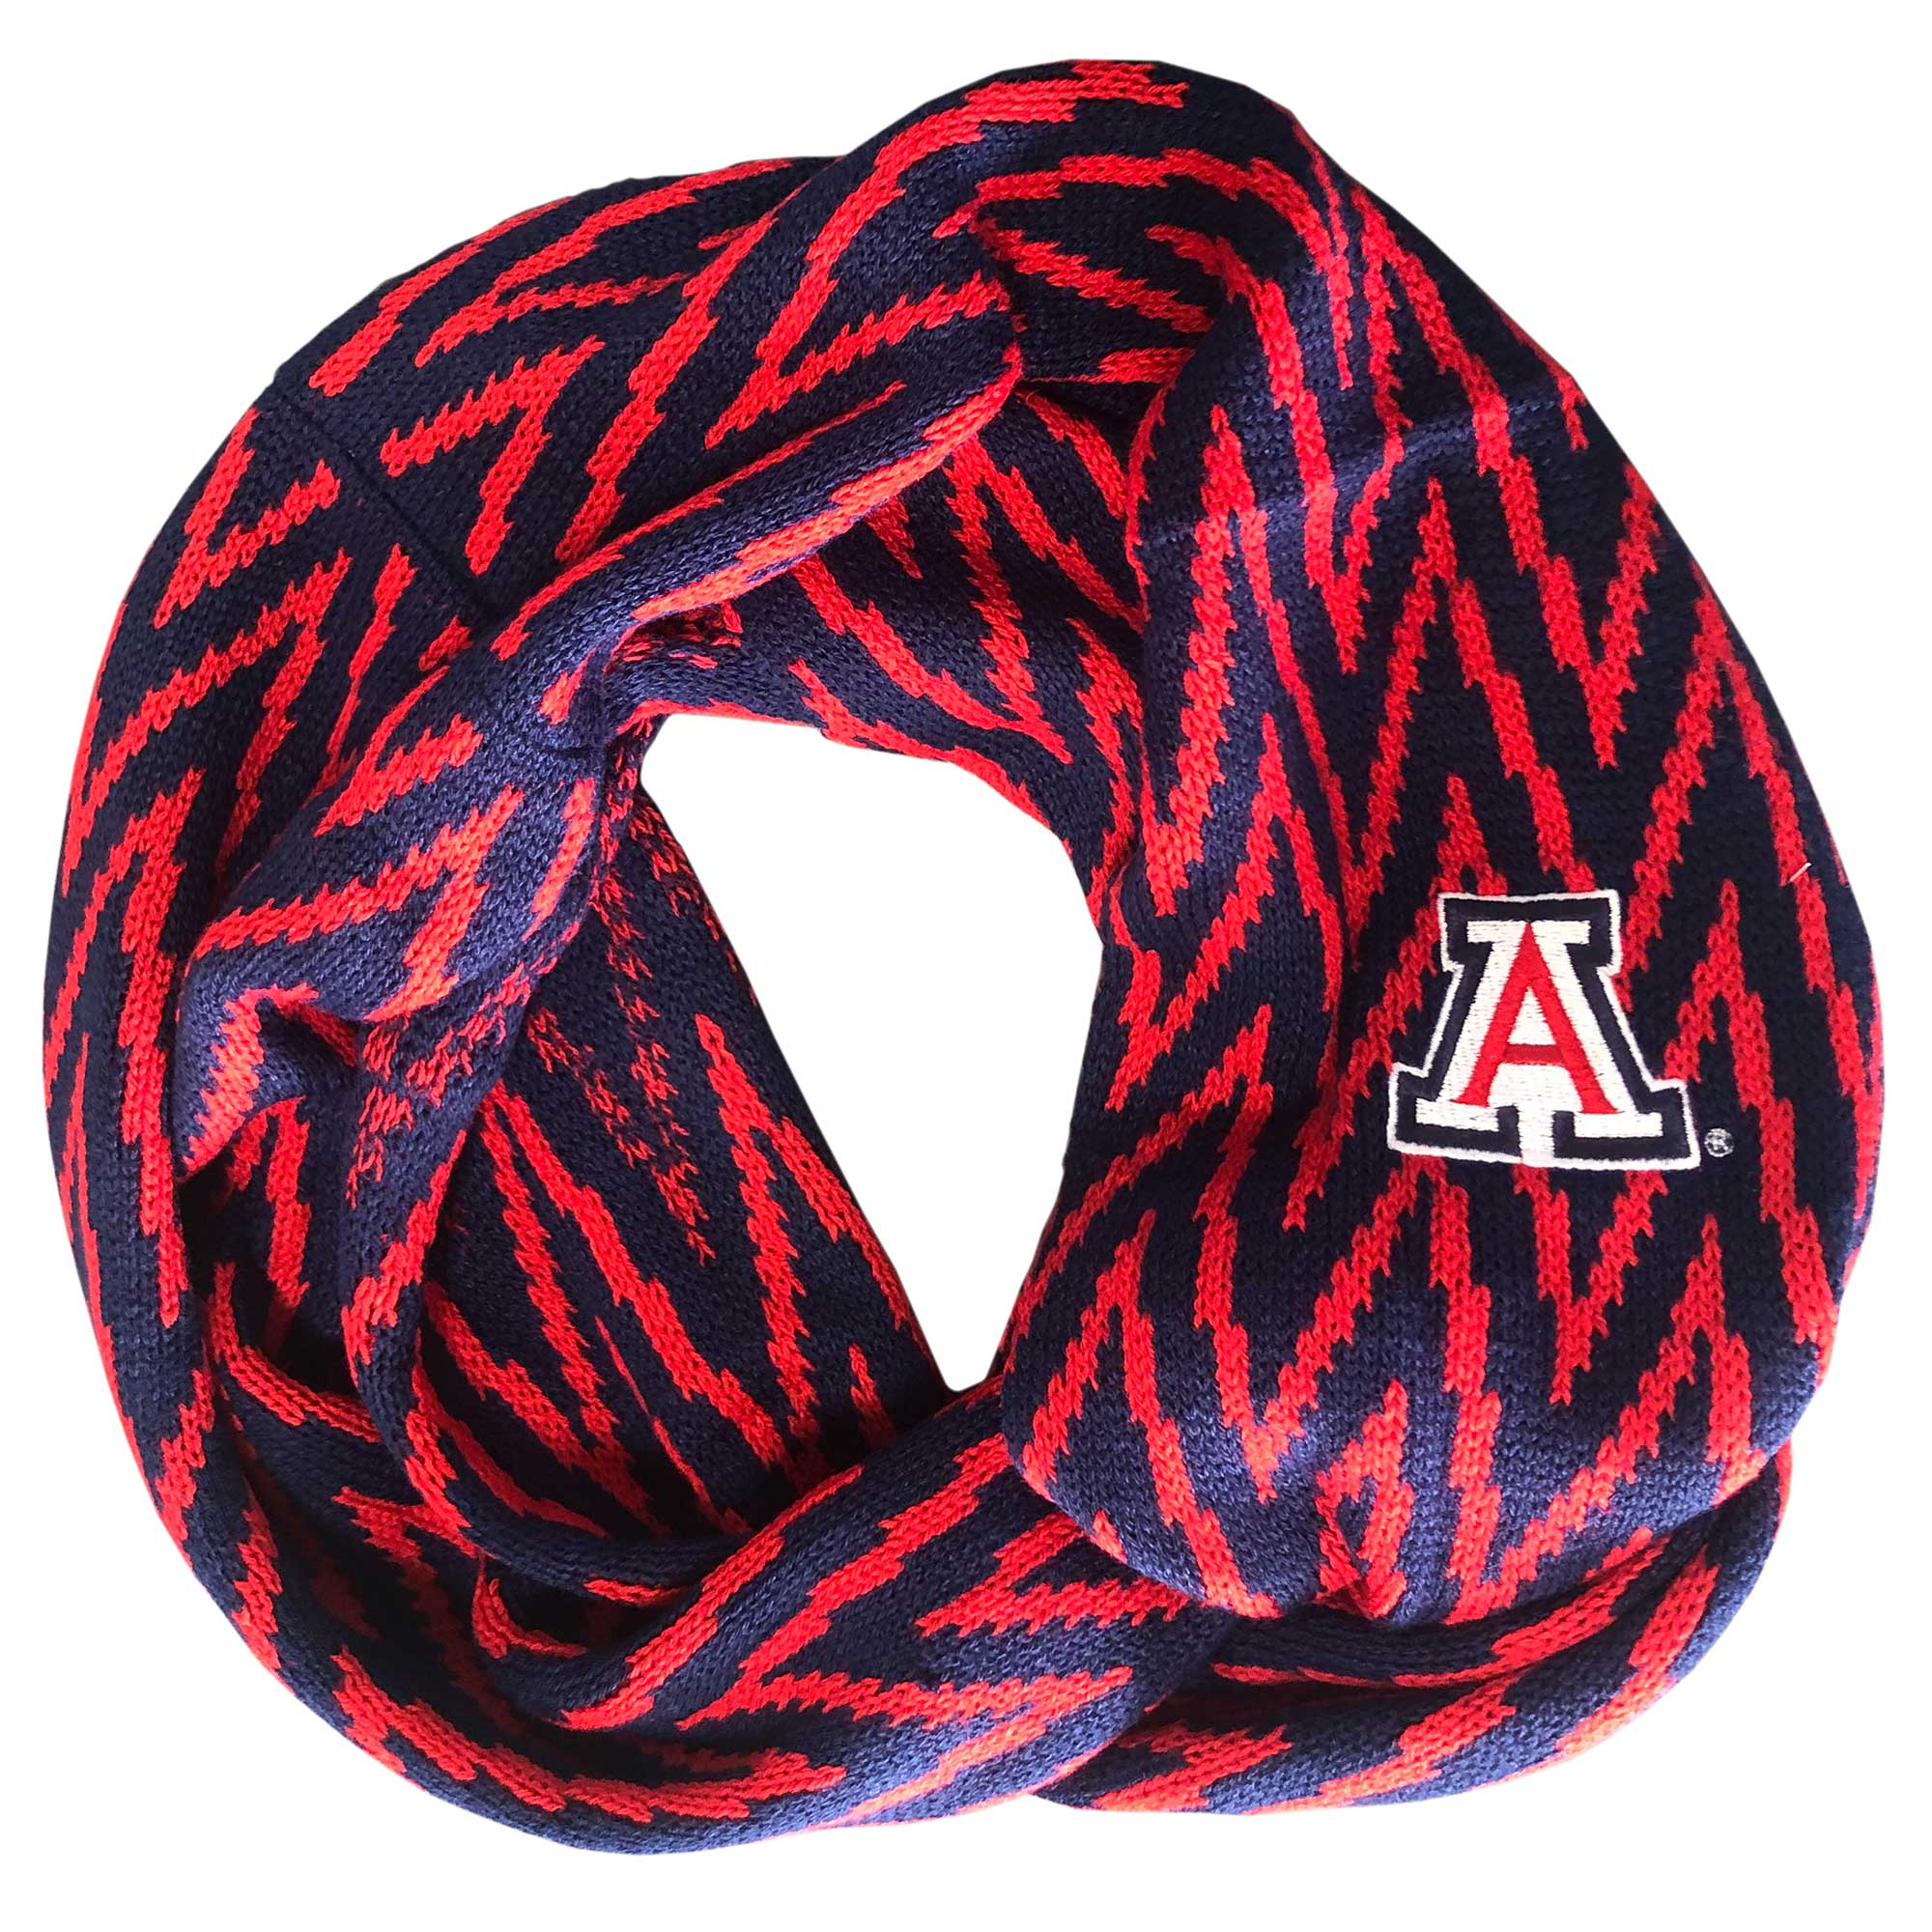 ARIZONA WILDCATS KNIT INFINITY SCARF